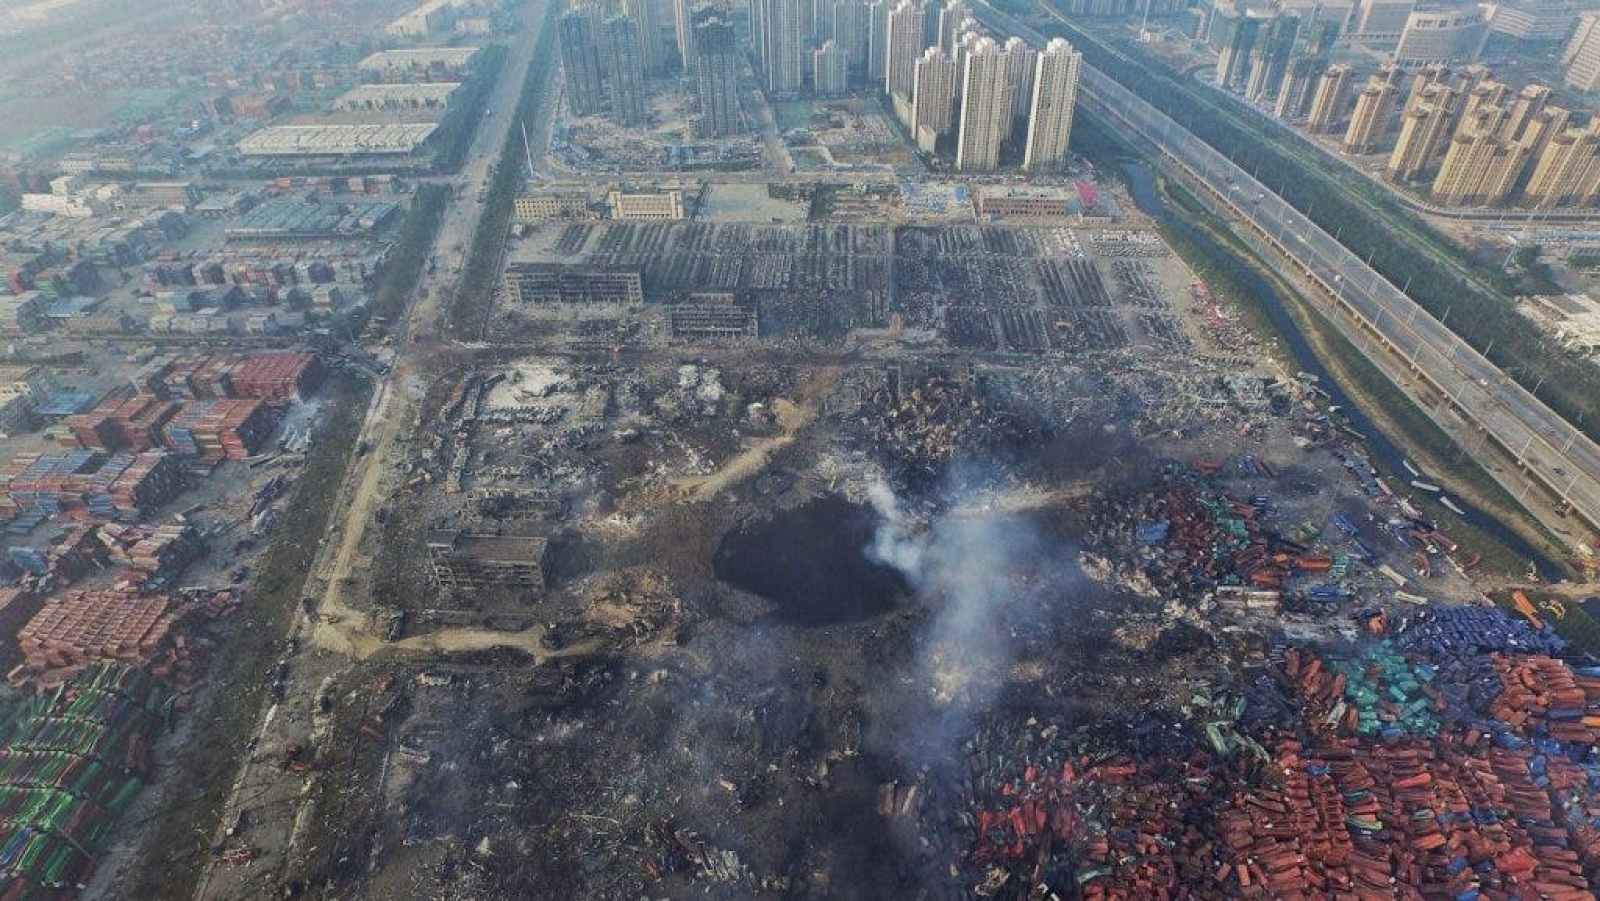 The huge crater left in the wake of the explosion in Tianjin, China.(EPA)